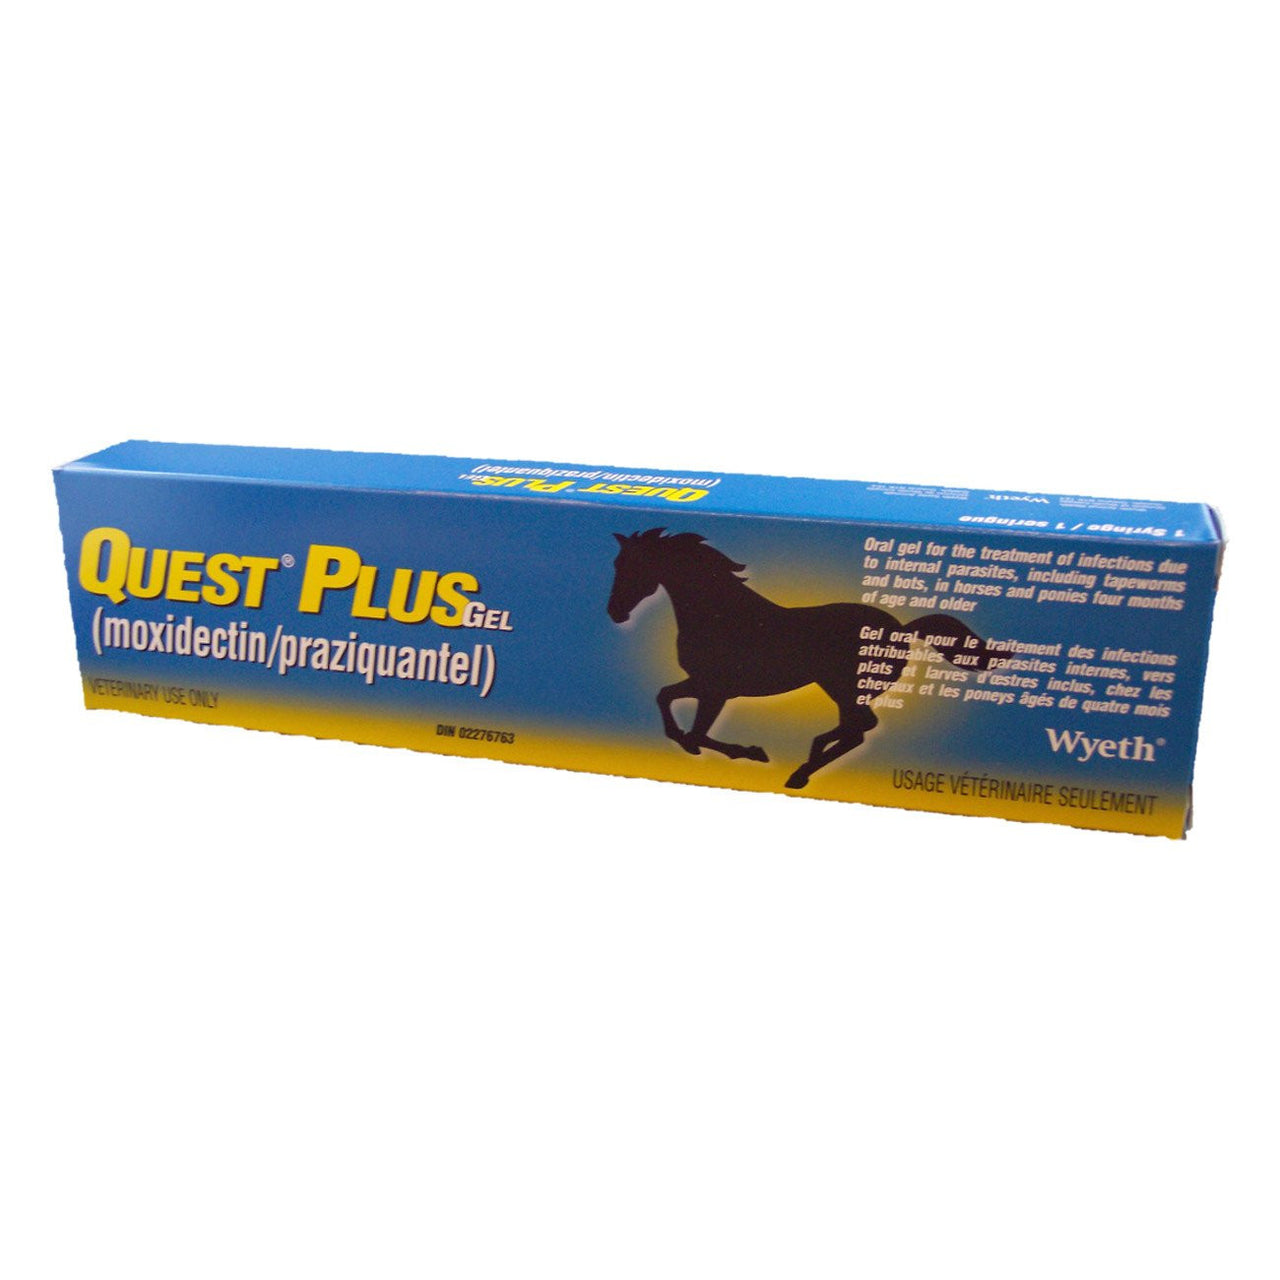 Quest Plus Gel (2% Moxidectin 12.5% Praziquantel) - Parasiticides Zoetis - Canada